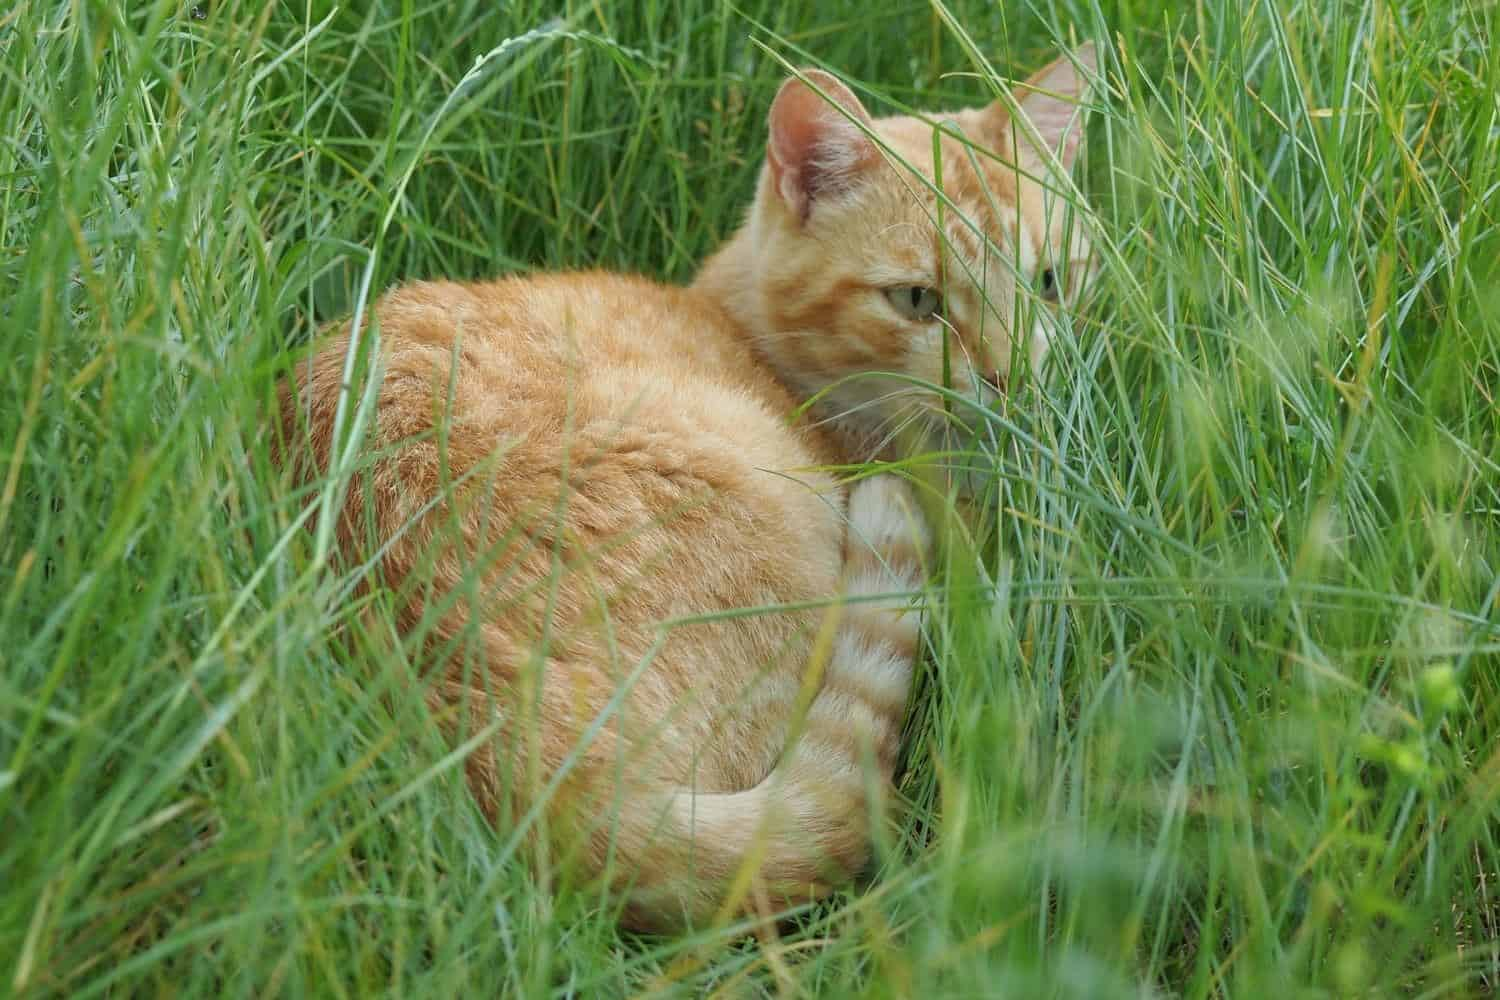 Ginger cat making a bed in the grass.